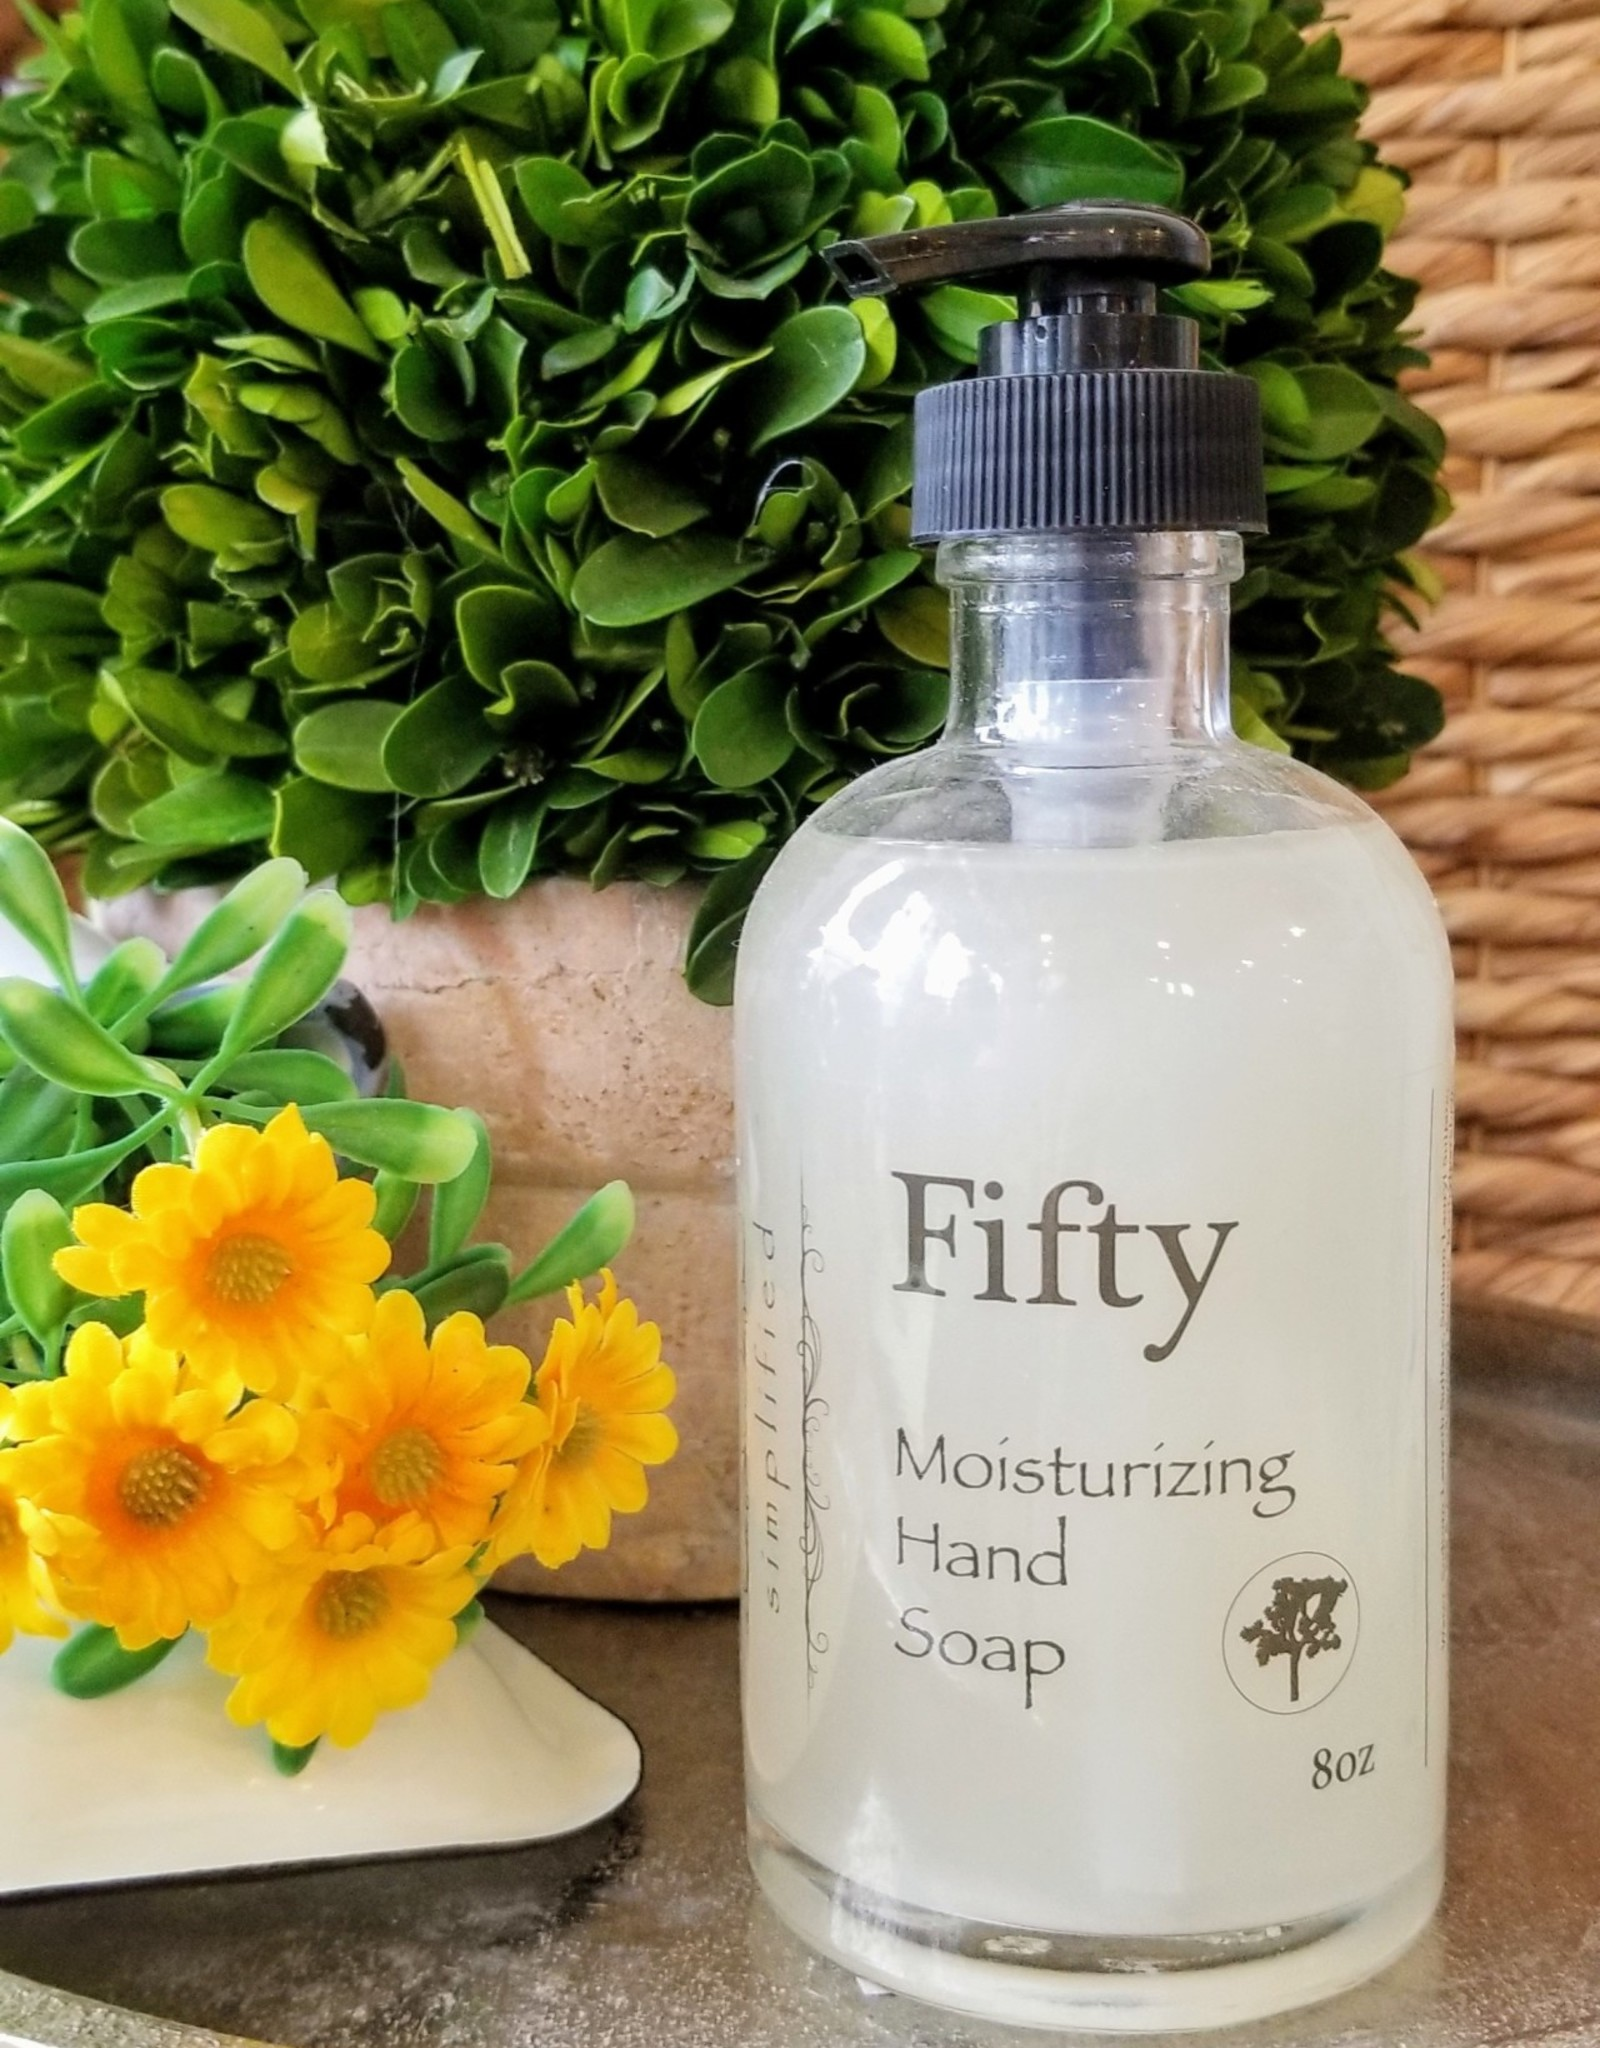 Hand Soap 8oz - Fifty